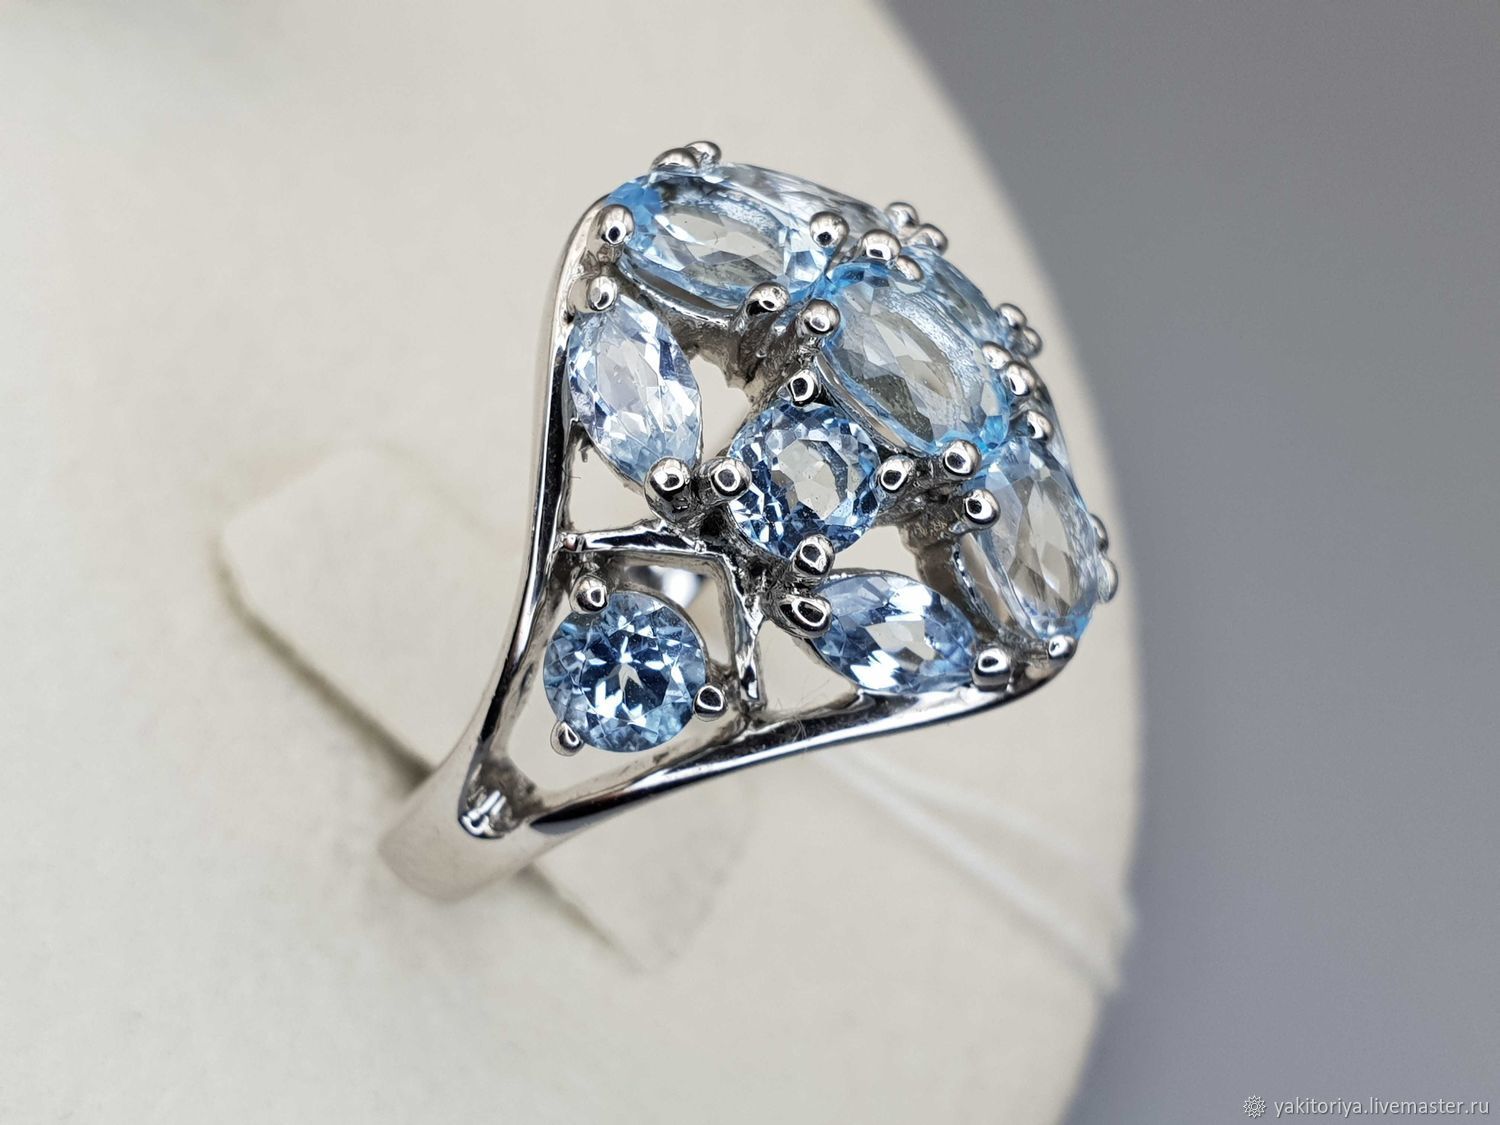 Silver ring with Topaz, Rings, Moscow,  Фото №1